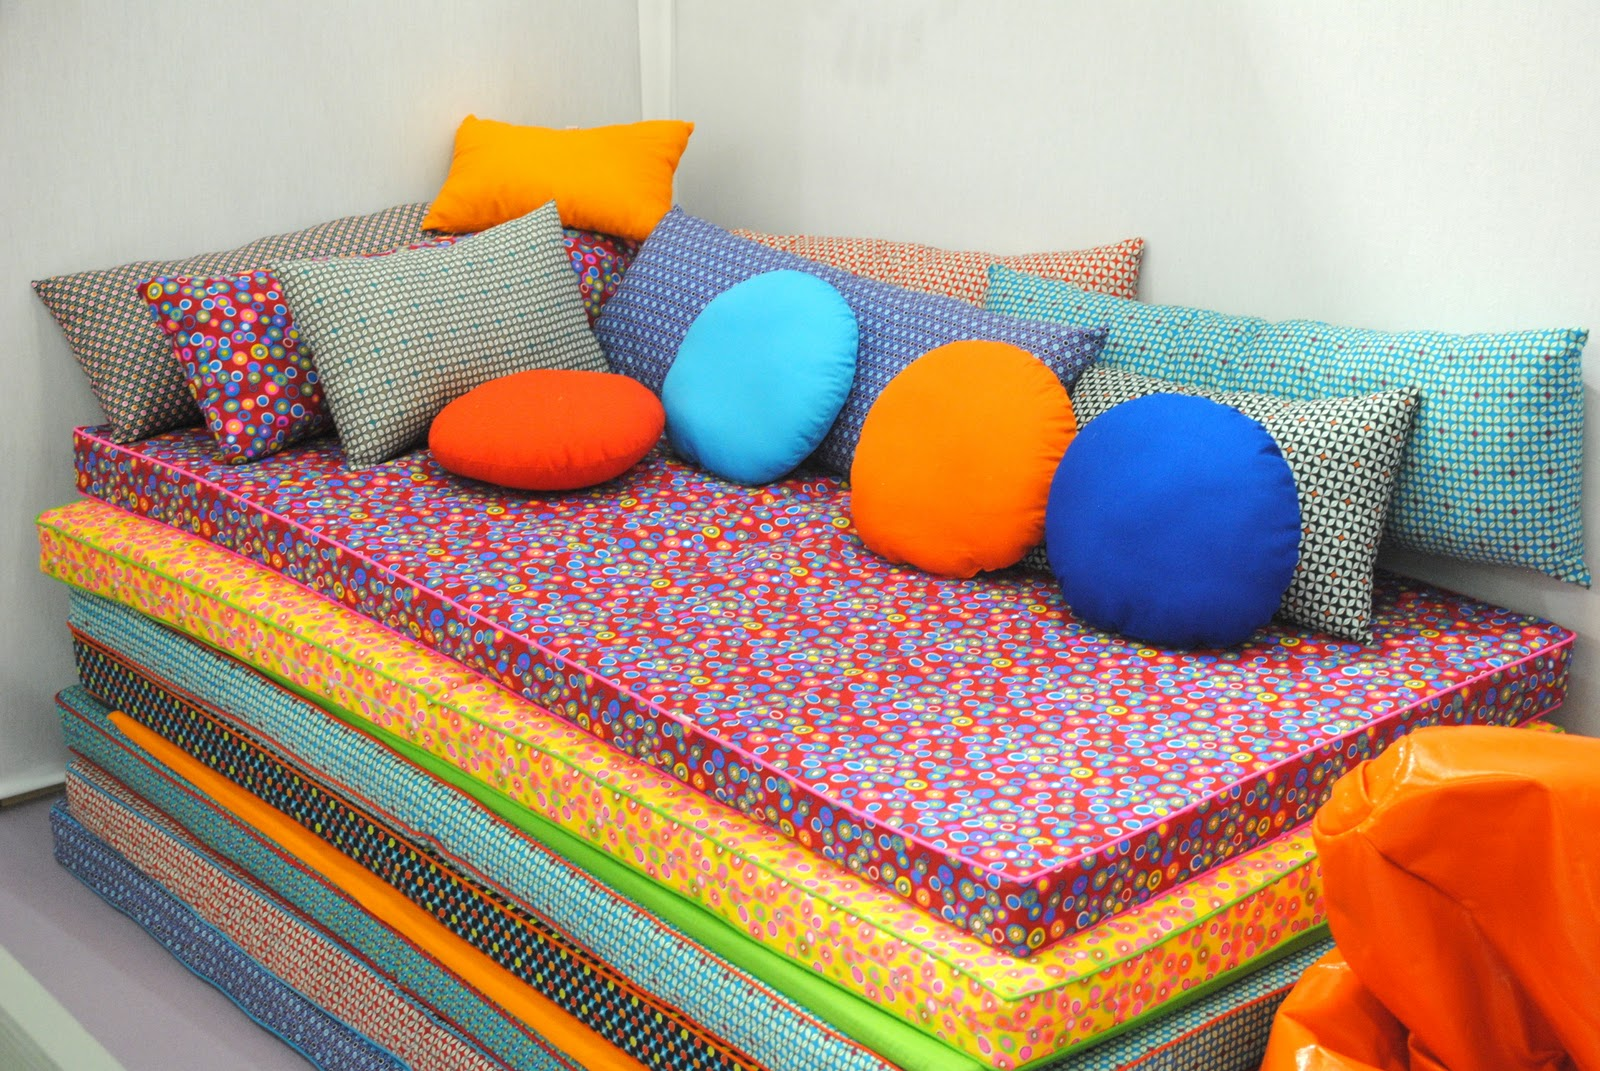 Cute Idea for Kids' Playroom- Foam Mat Couch